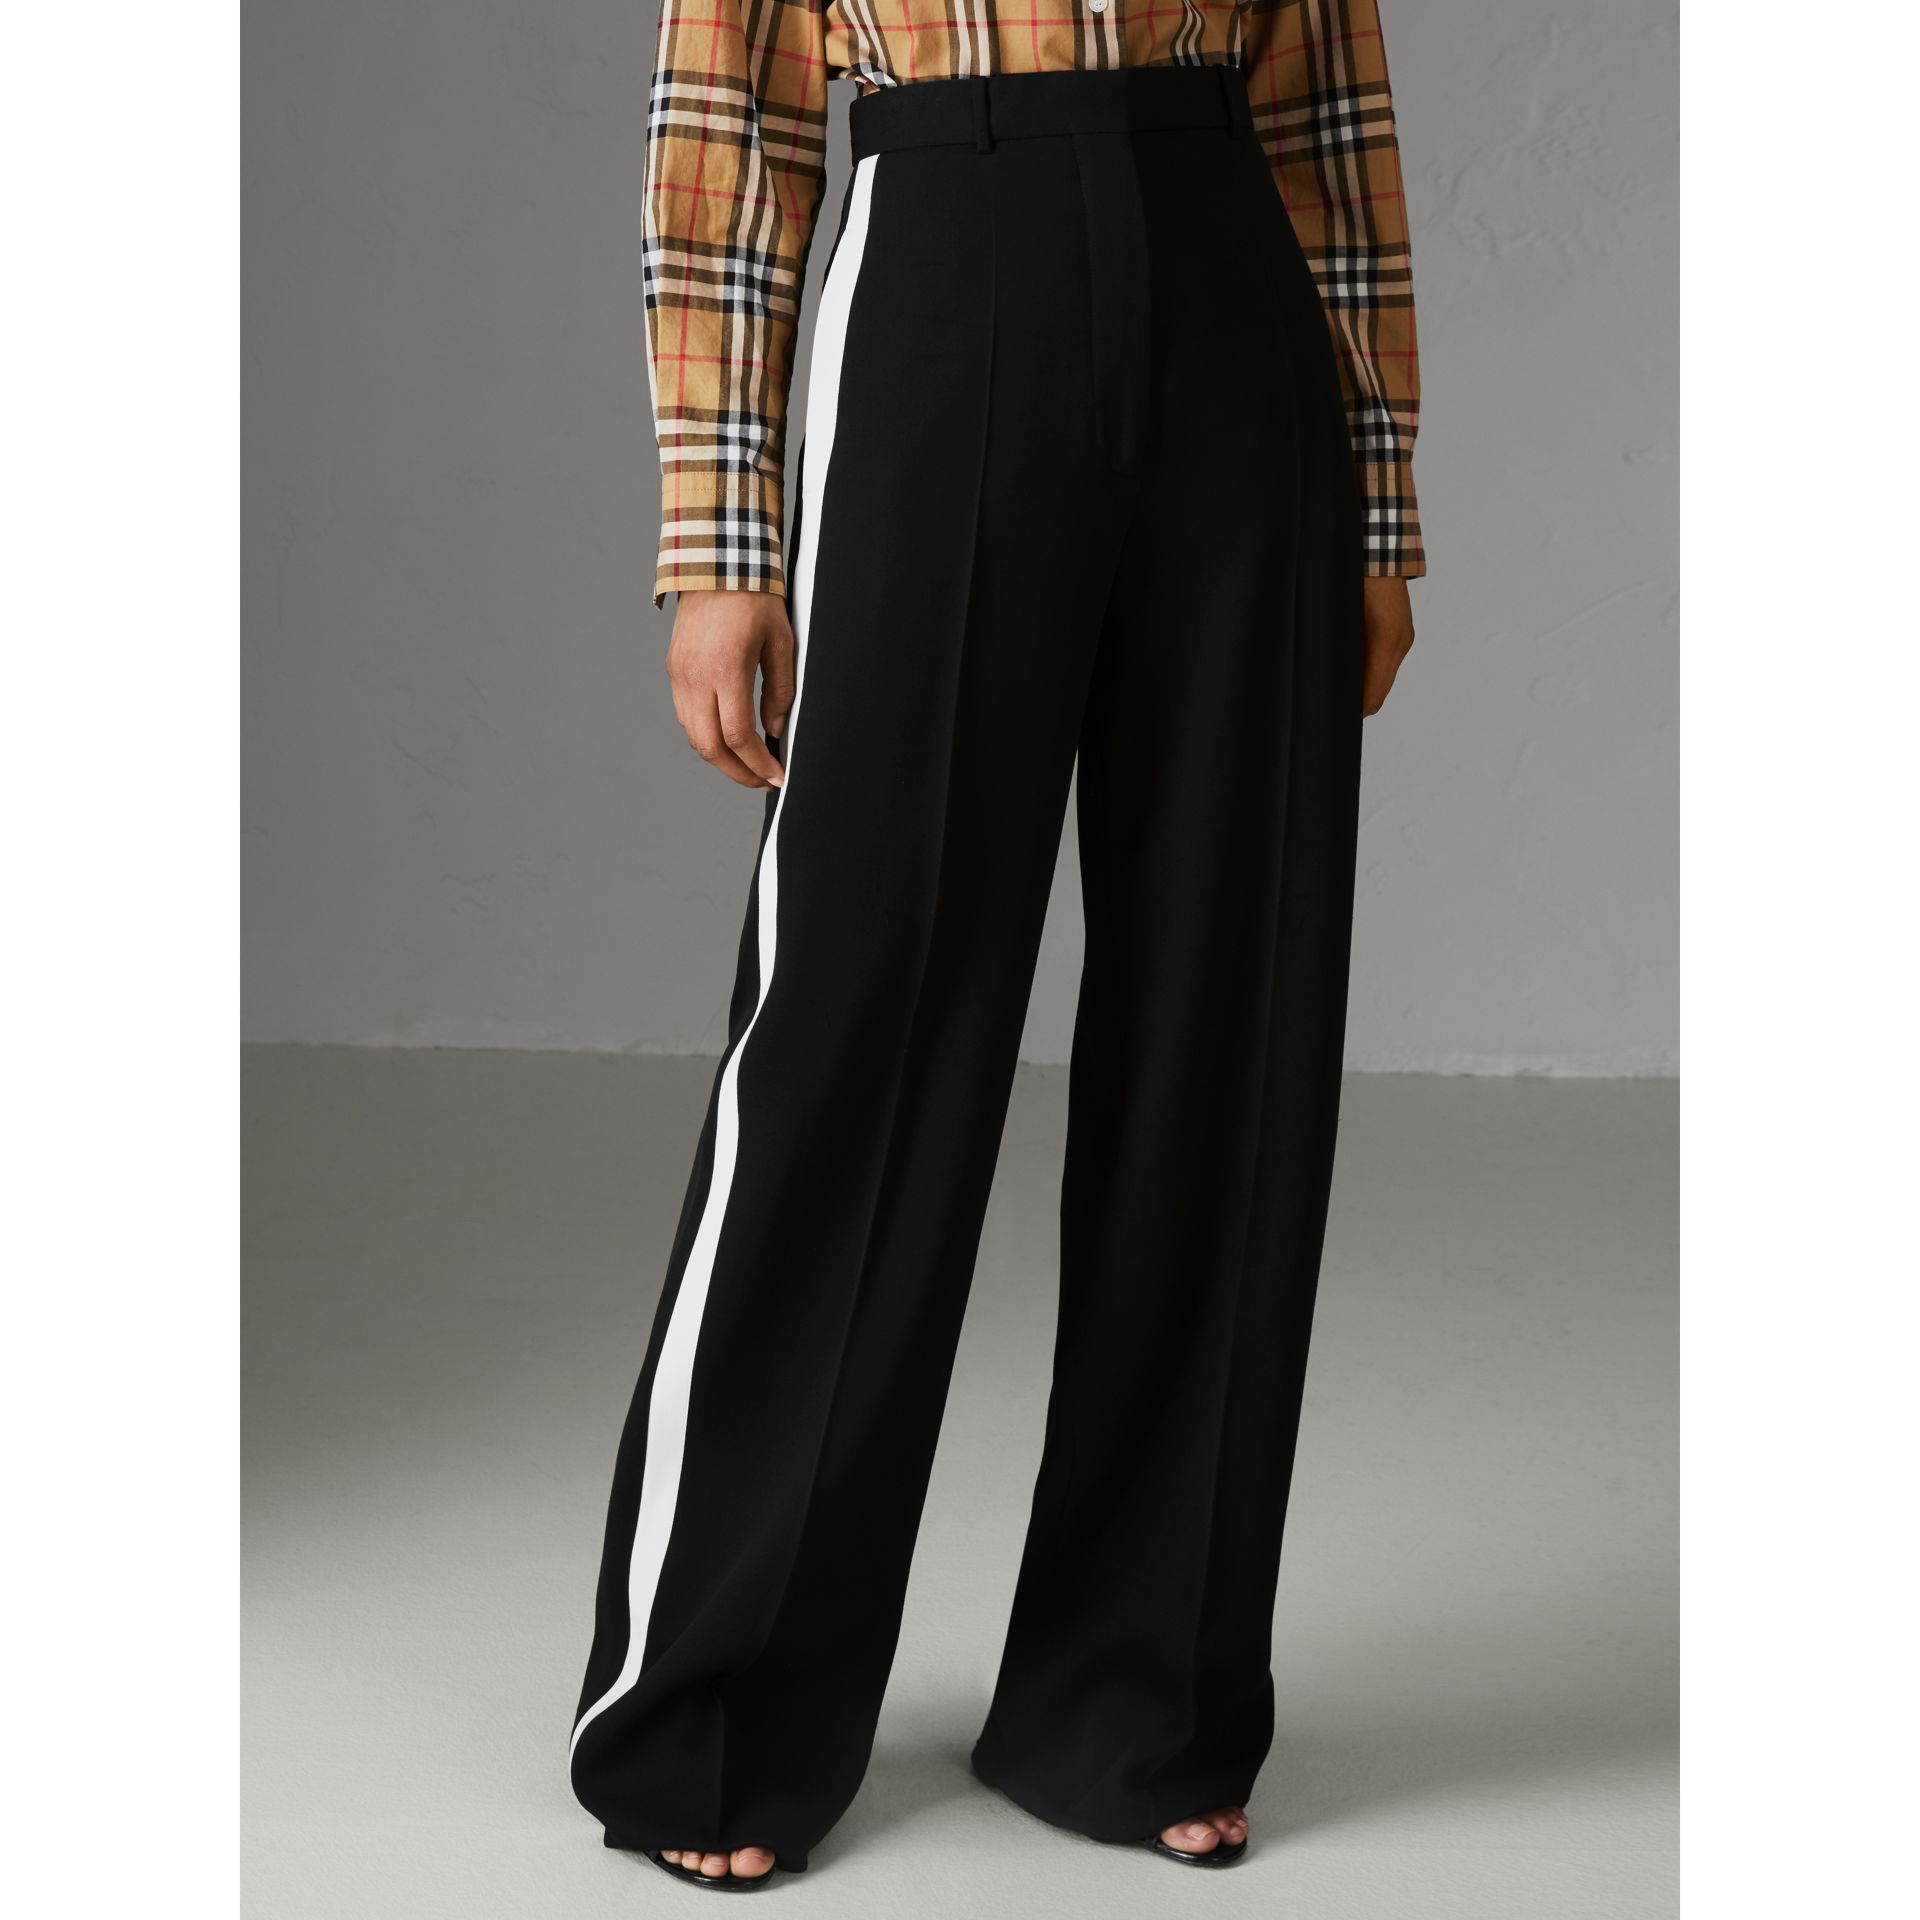 Pantalon ample en crêpe (Noir) - Femme | Burberry - photo de la galerie 4